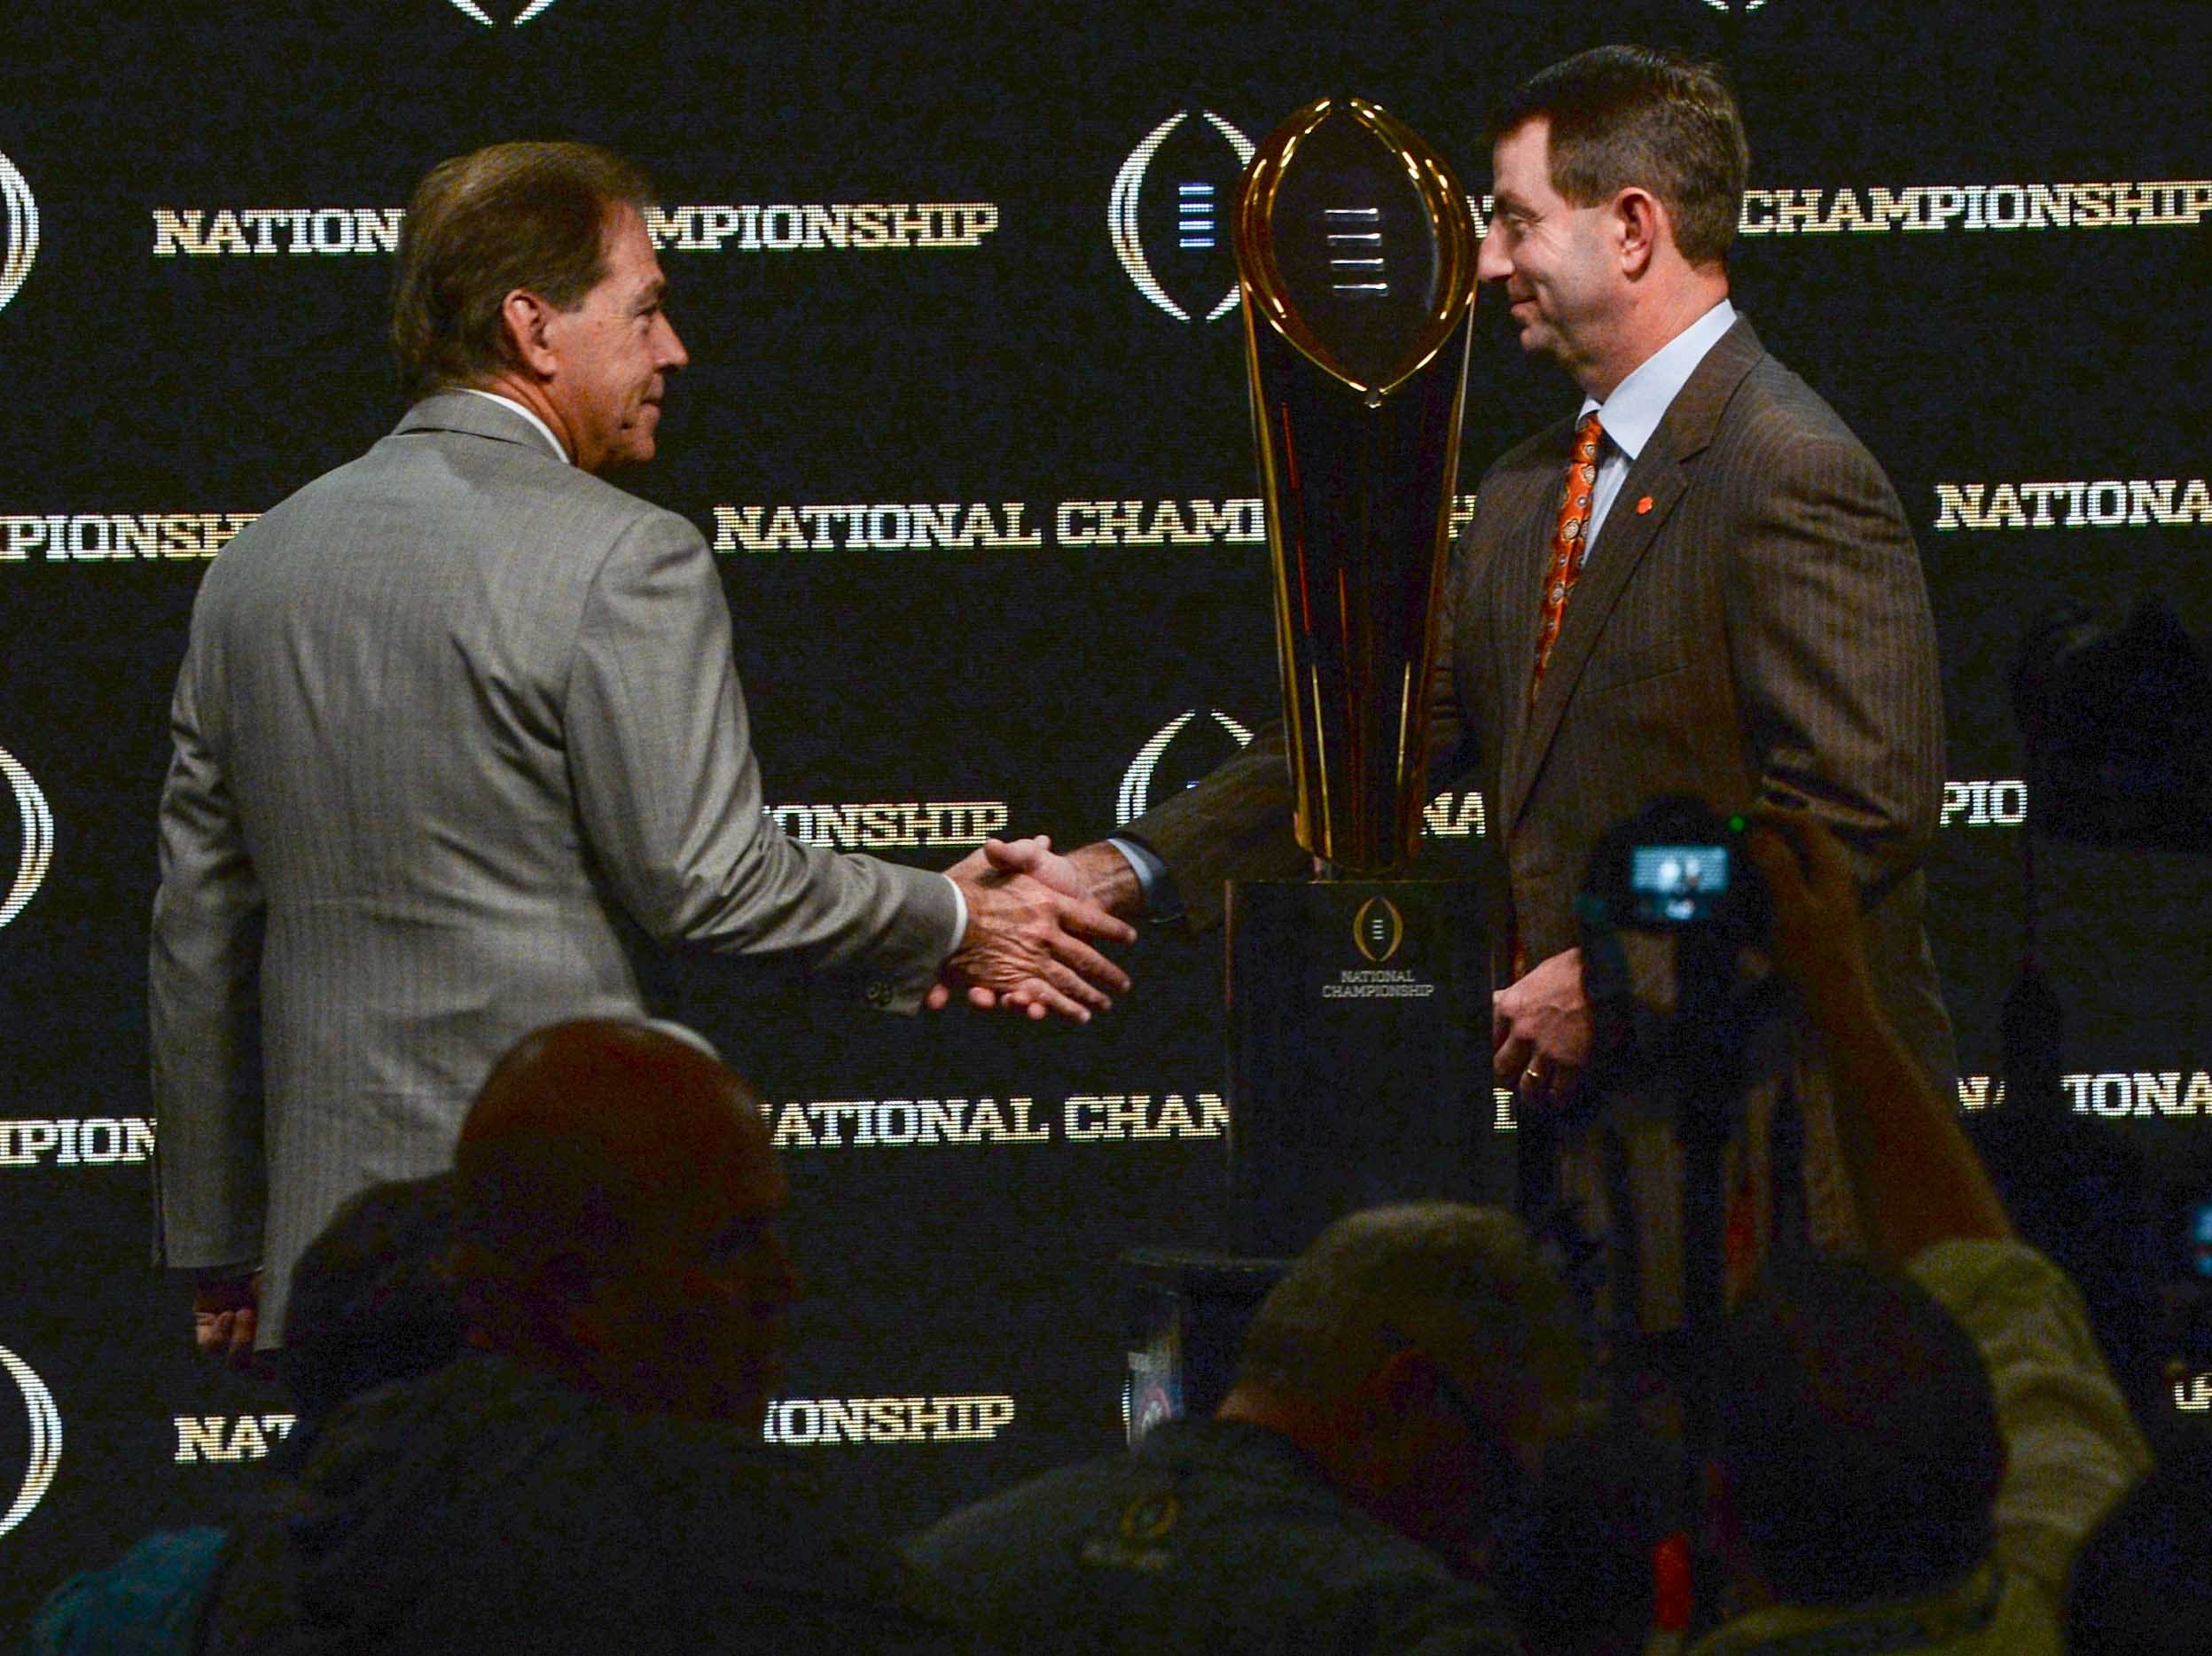 Alabama coach Nick Saban, left, and Clemson Head Coach Dabo Swinney shake hands after posing with the championship trophy during the College Football Playoff Championship coaches press conference in San Jose, California January 6, 2019.